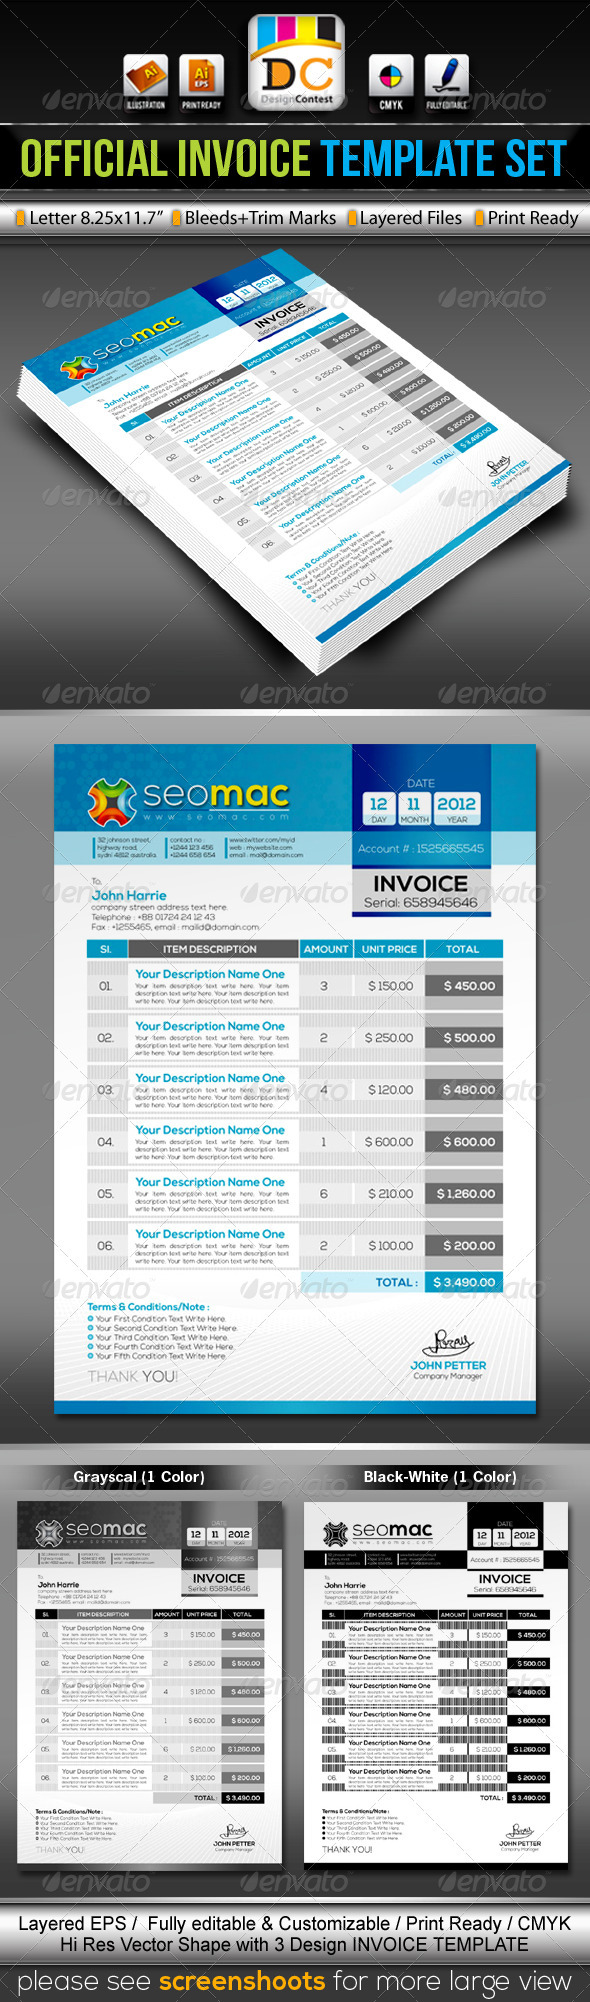 SeoMac_Official Invoice/Cash Memo Template Set - Proposals & Invoices Stationery